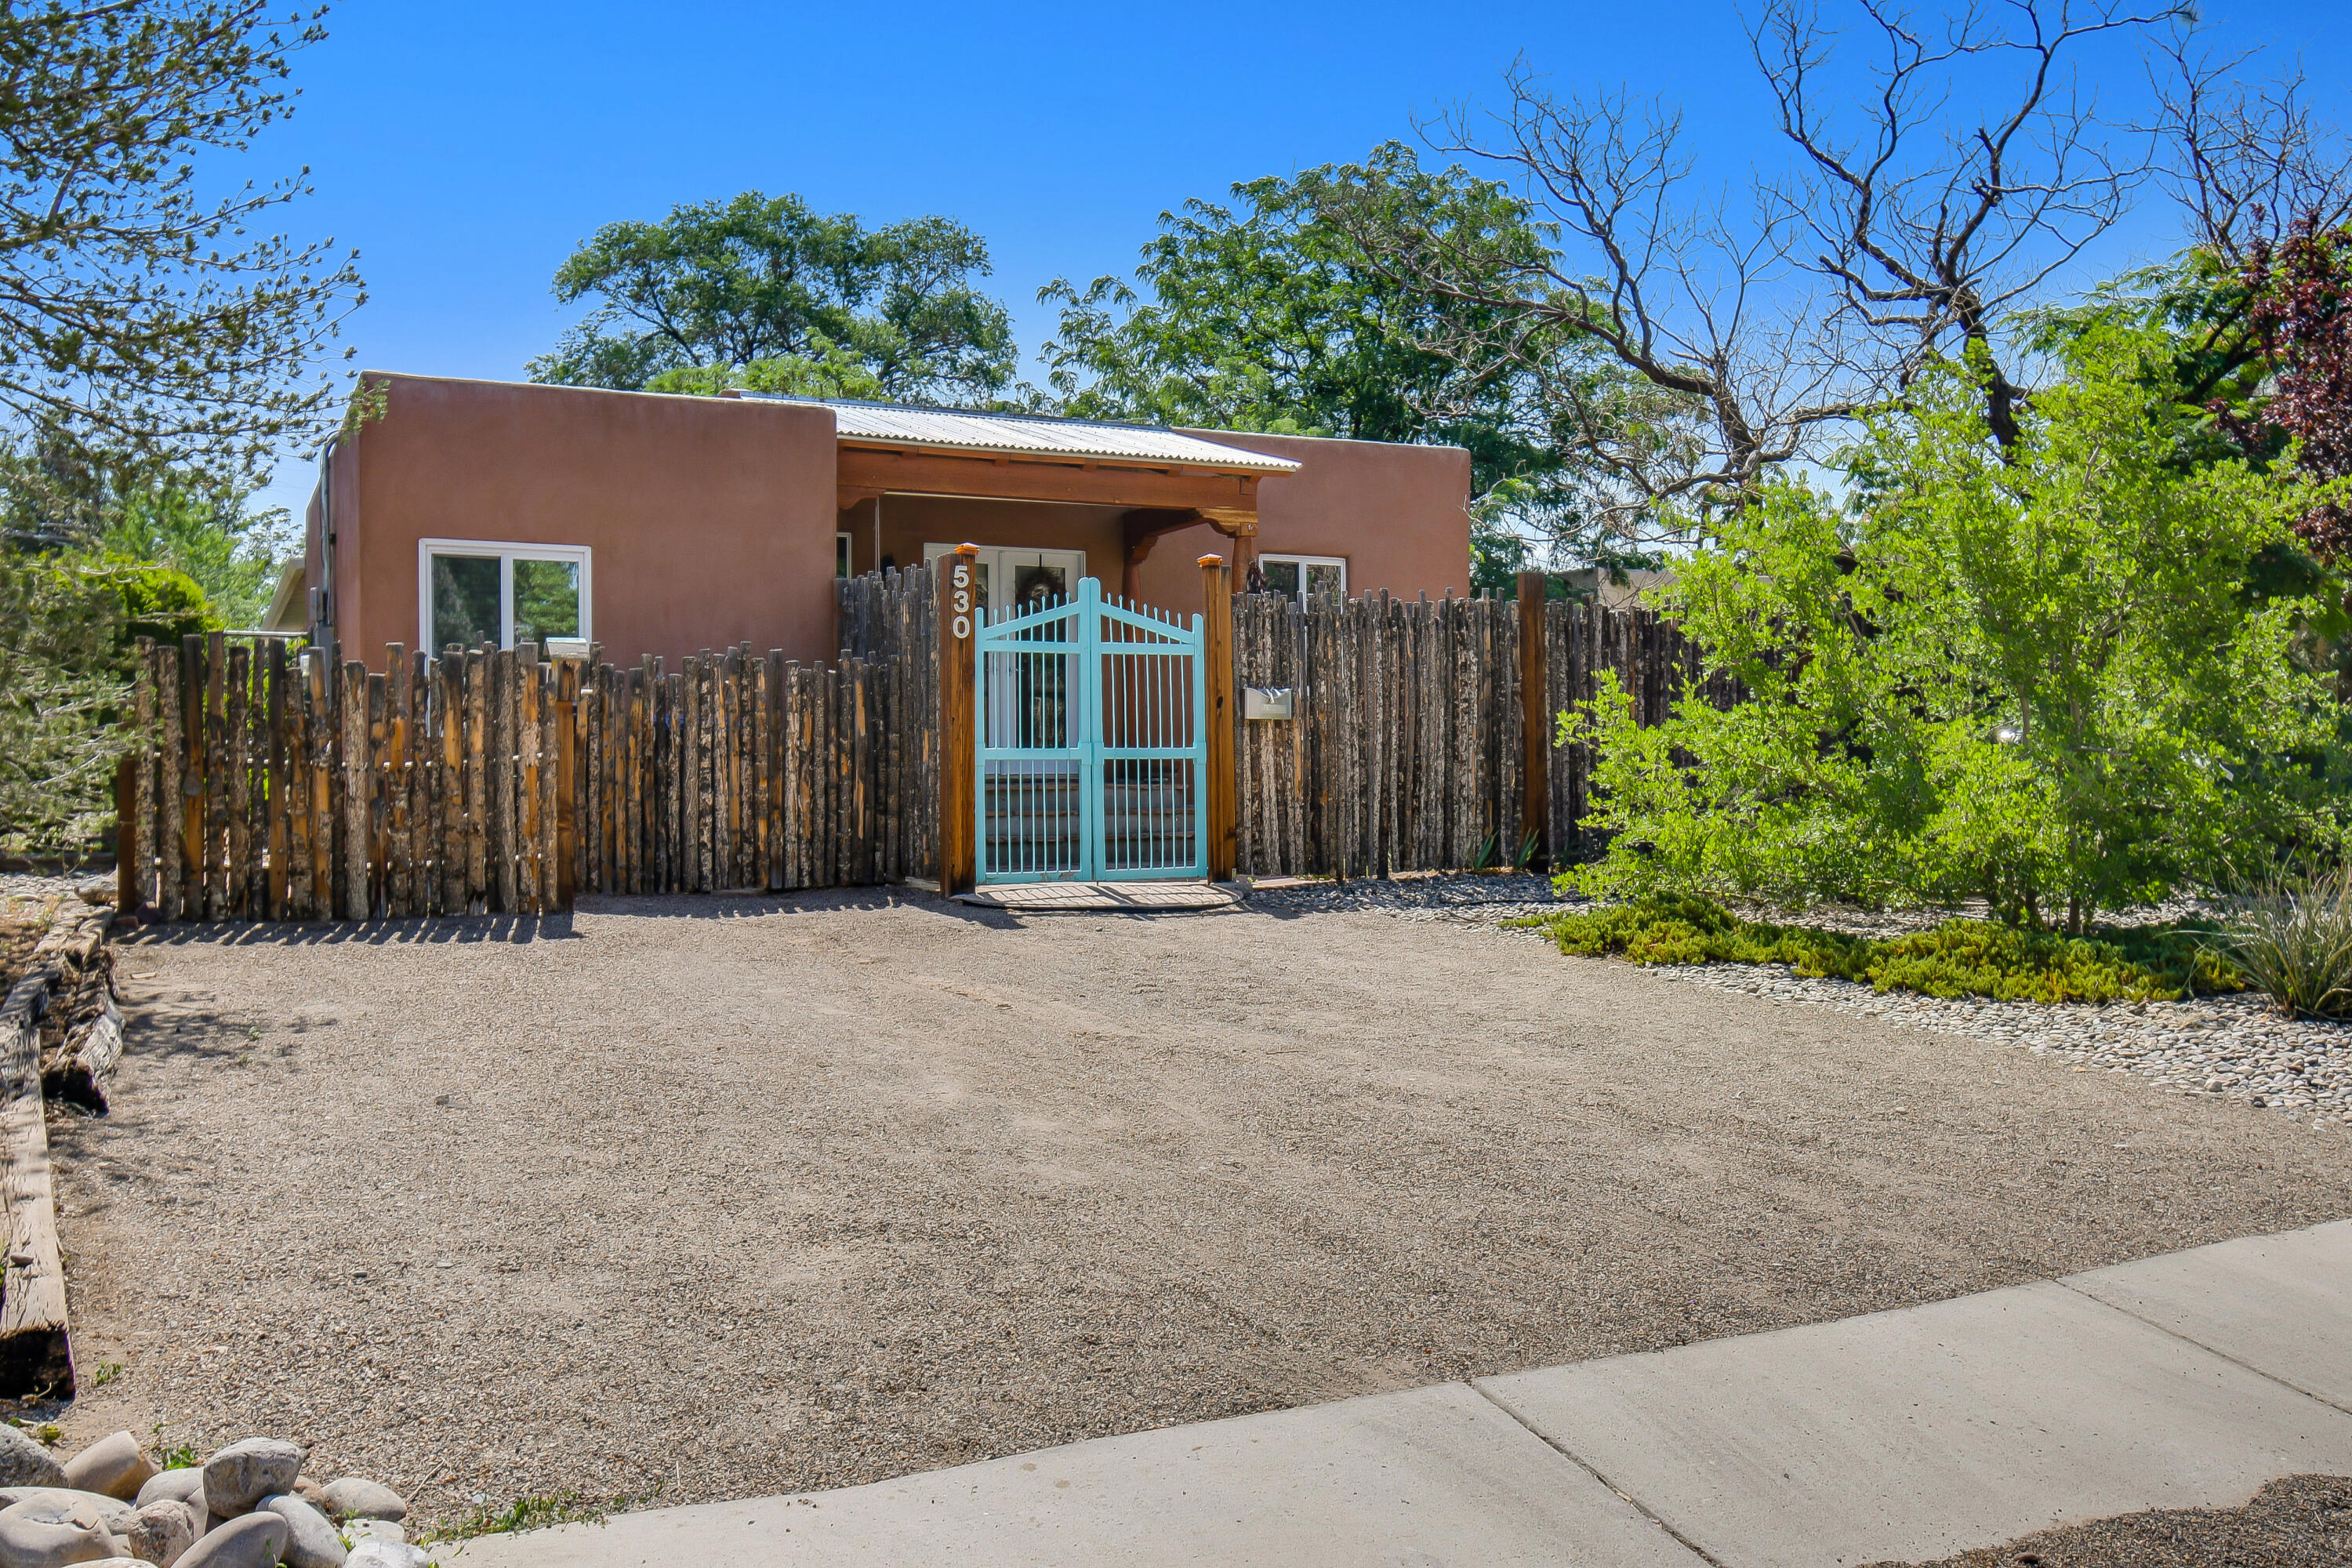 Enjoy the Nob Hill lifestyle in this beautiful three bedrooms and two bath open floorplan home. Gleaming hardwood floors, newly remodeled kitchen and owner suite bathroom are just a few of the fabulous touches in this home. All of this in one of the most walkable areas in Albuquerque! Nearby amenities include shopping, dining, UNM hospital, UNM Main Campus, and Downtown Albuquerque.